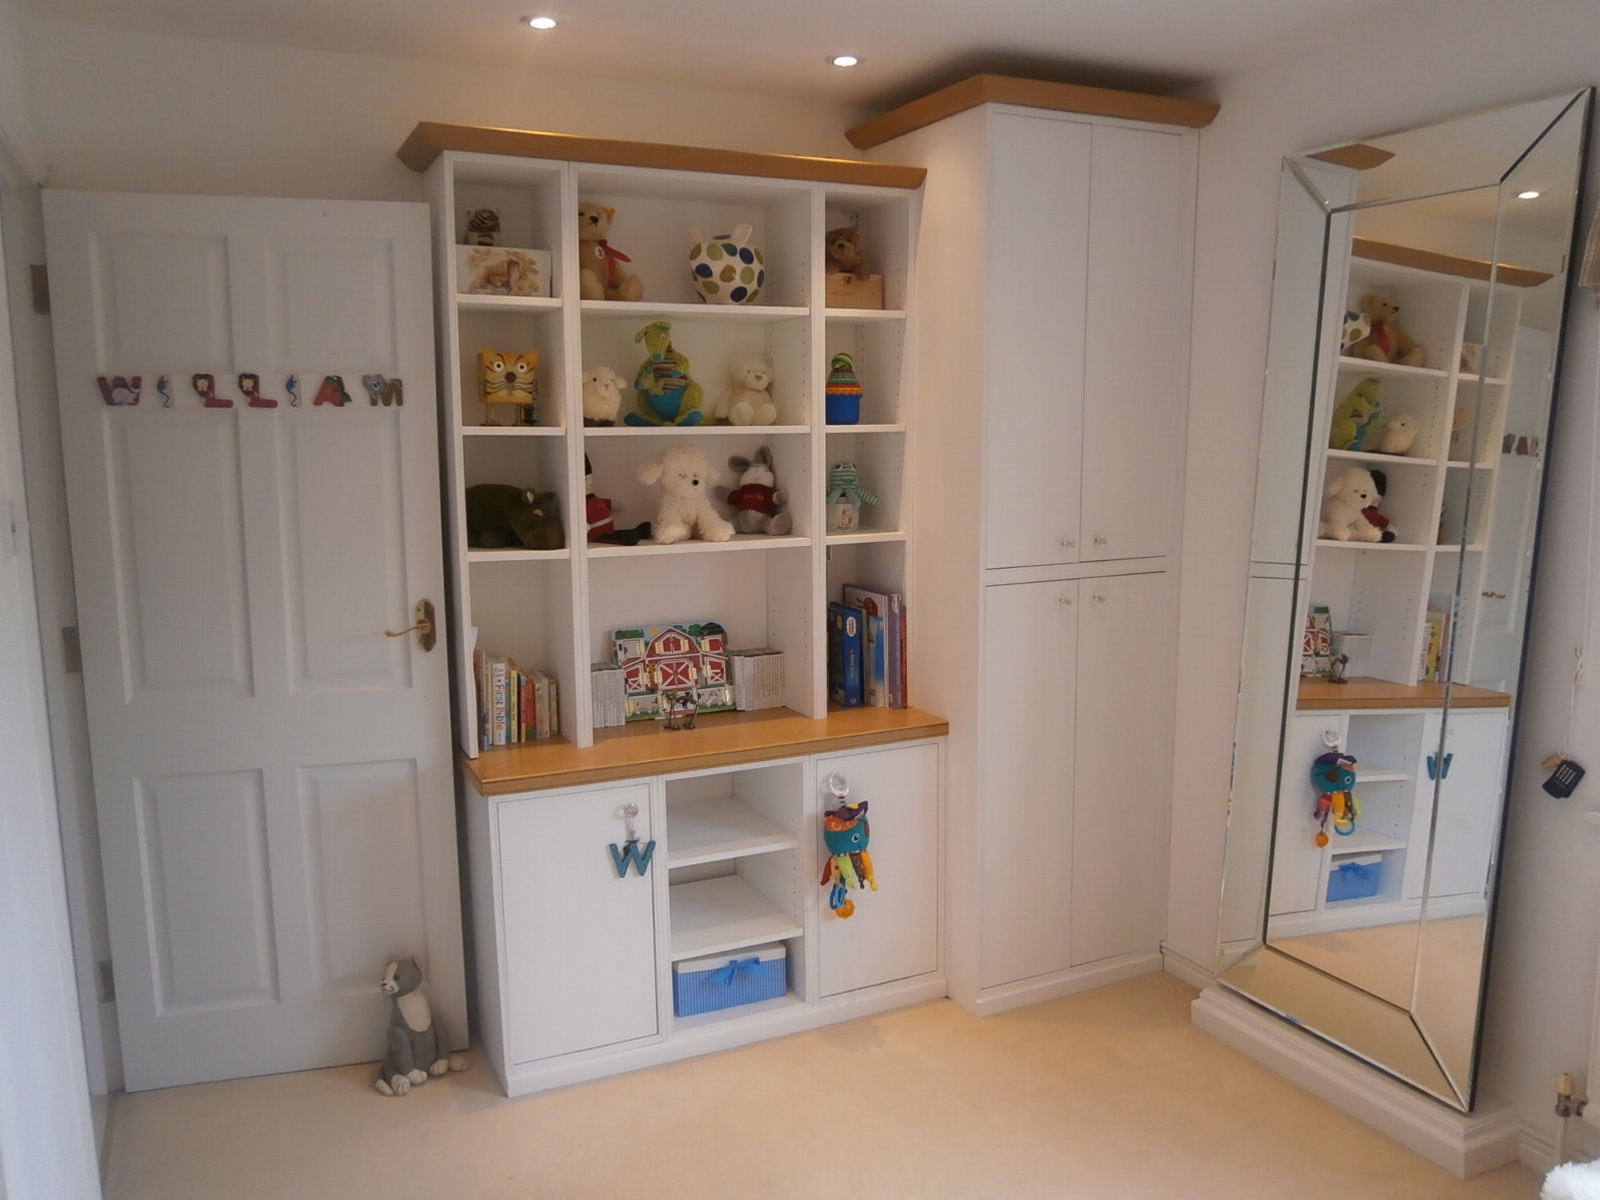 Bespoke Shelving London Bespoke Bookcases And Bookshelves Shelvex Regarding Bespoke Shelving Units (View 7 of 15)